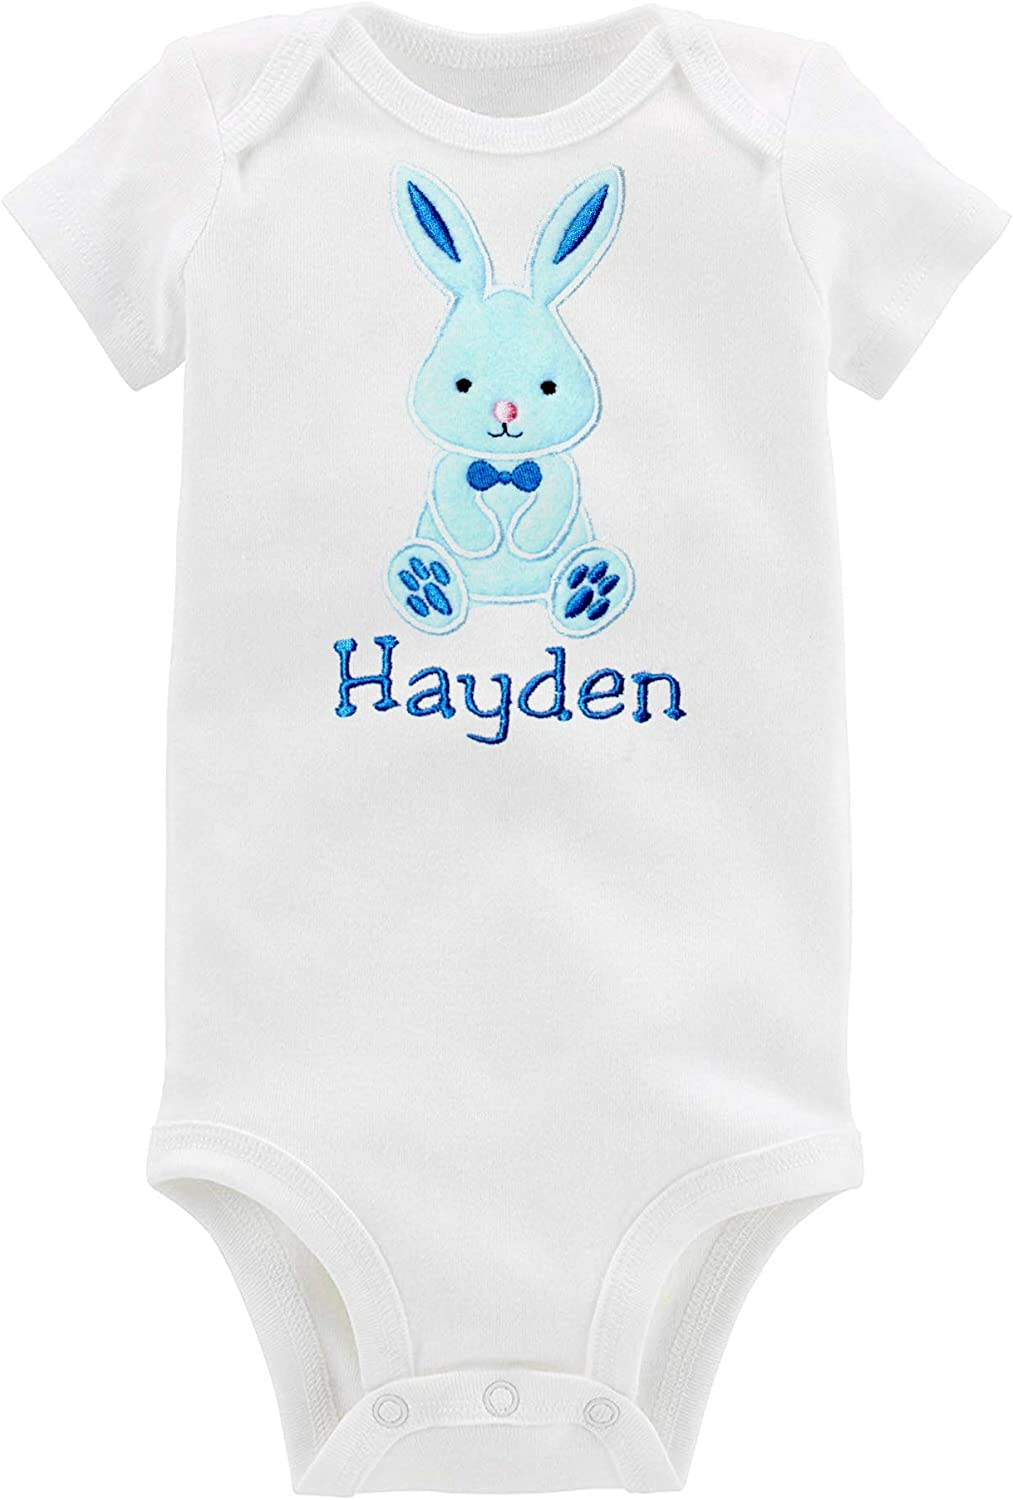 Baby Shower Baby Gifts Babies First Easter Bunny Cotton White Onesie Custom for Girl or Boy